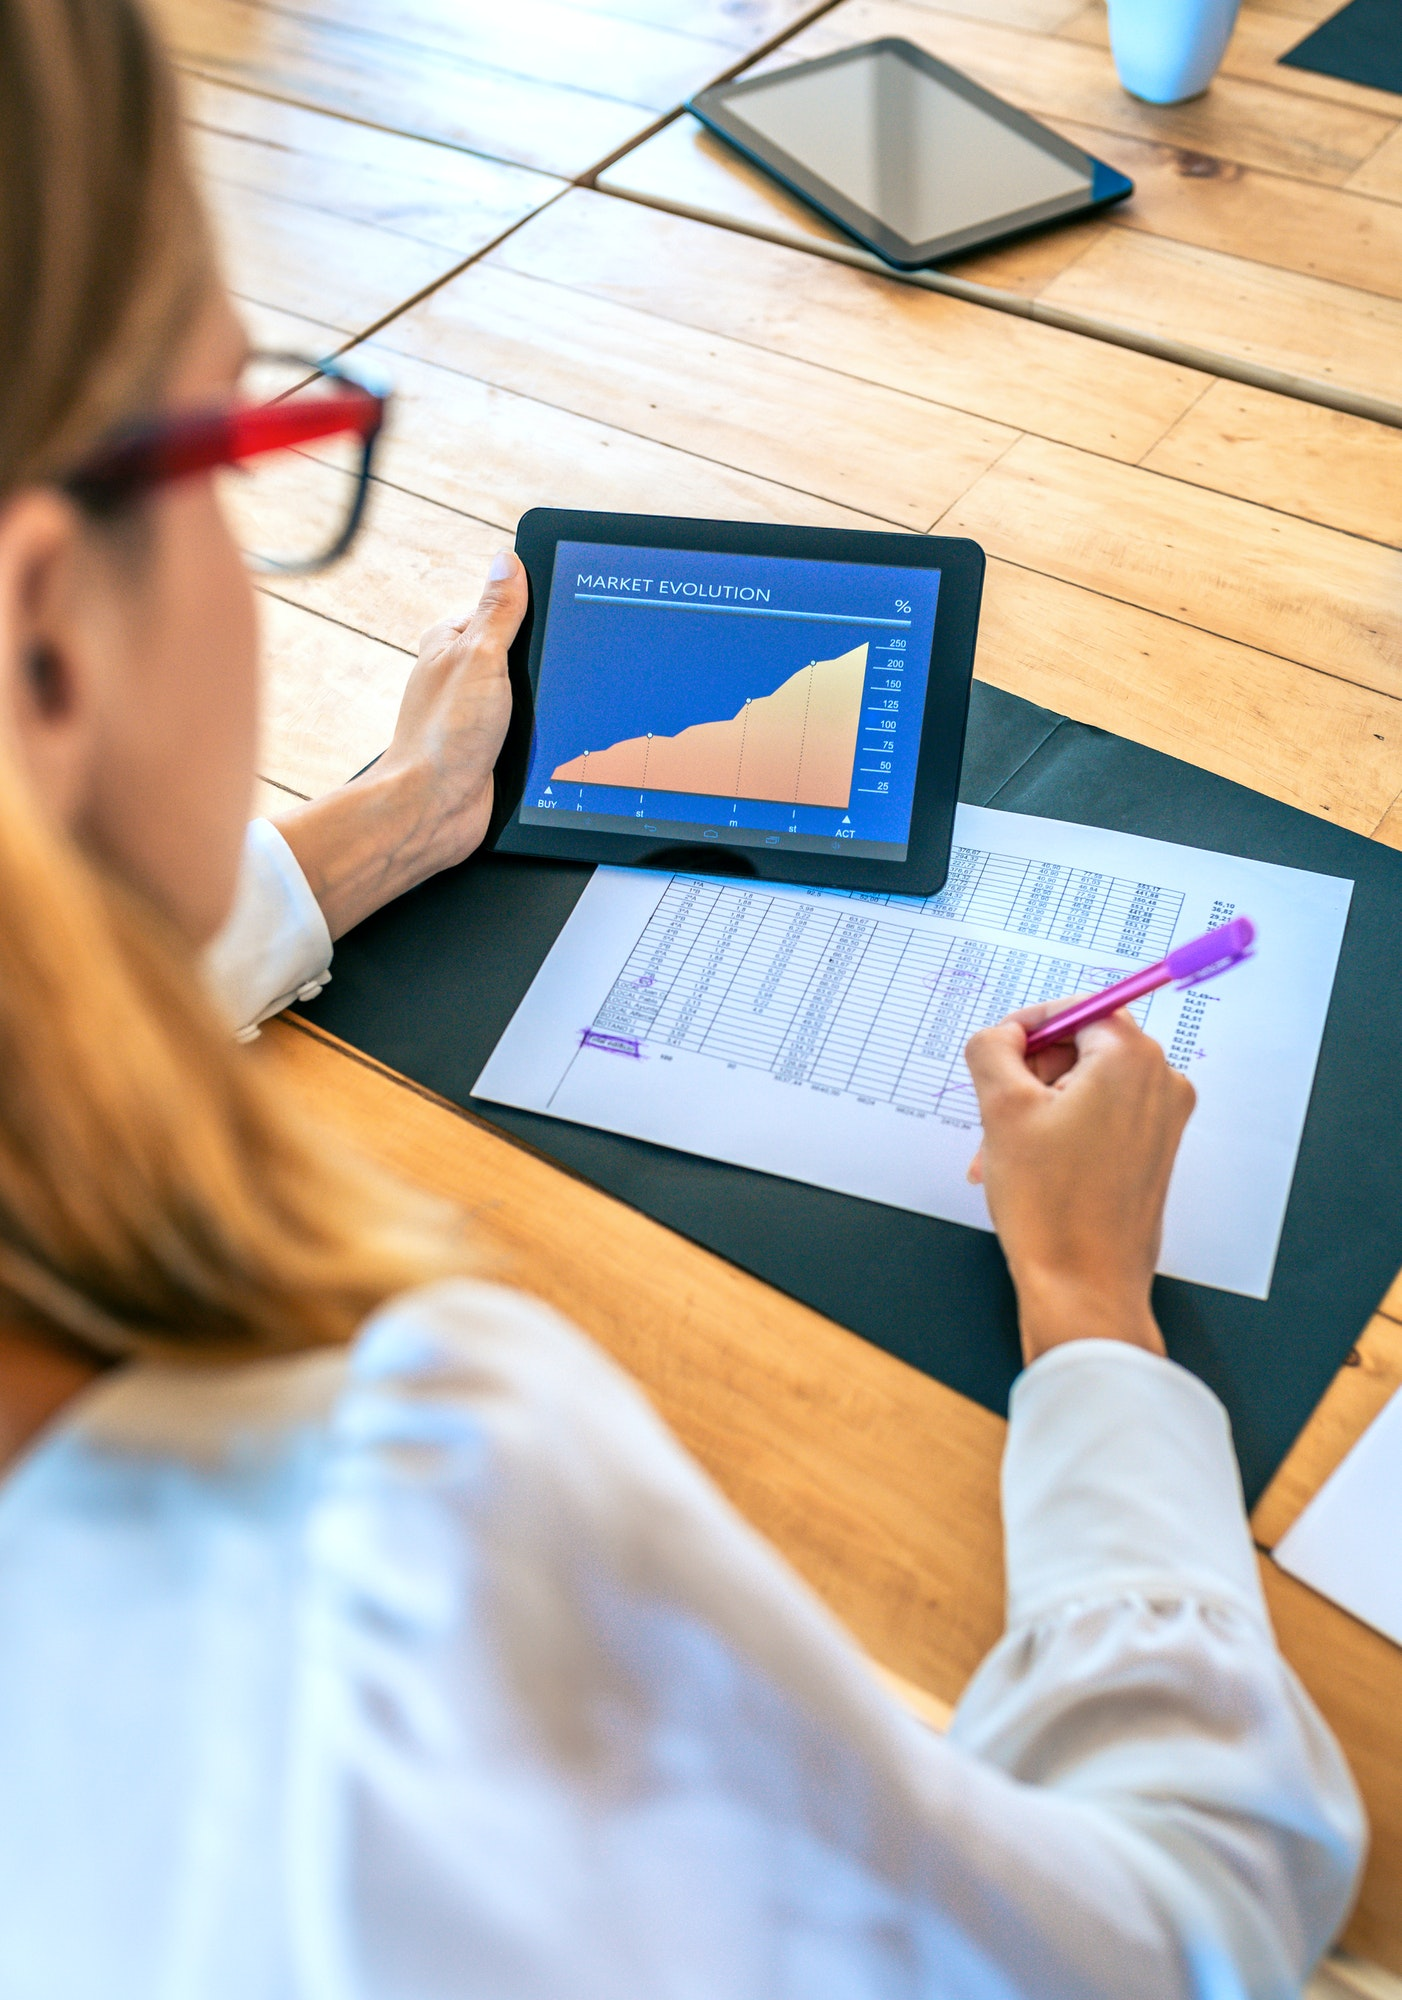 Businesswoman analyzing market evolution with tablet